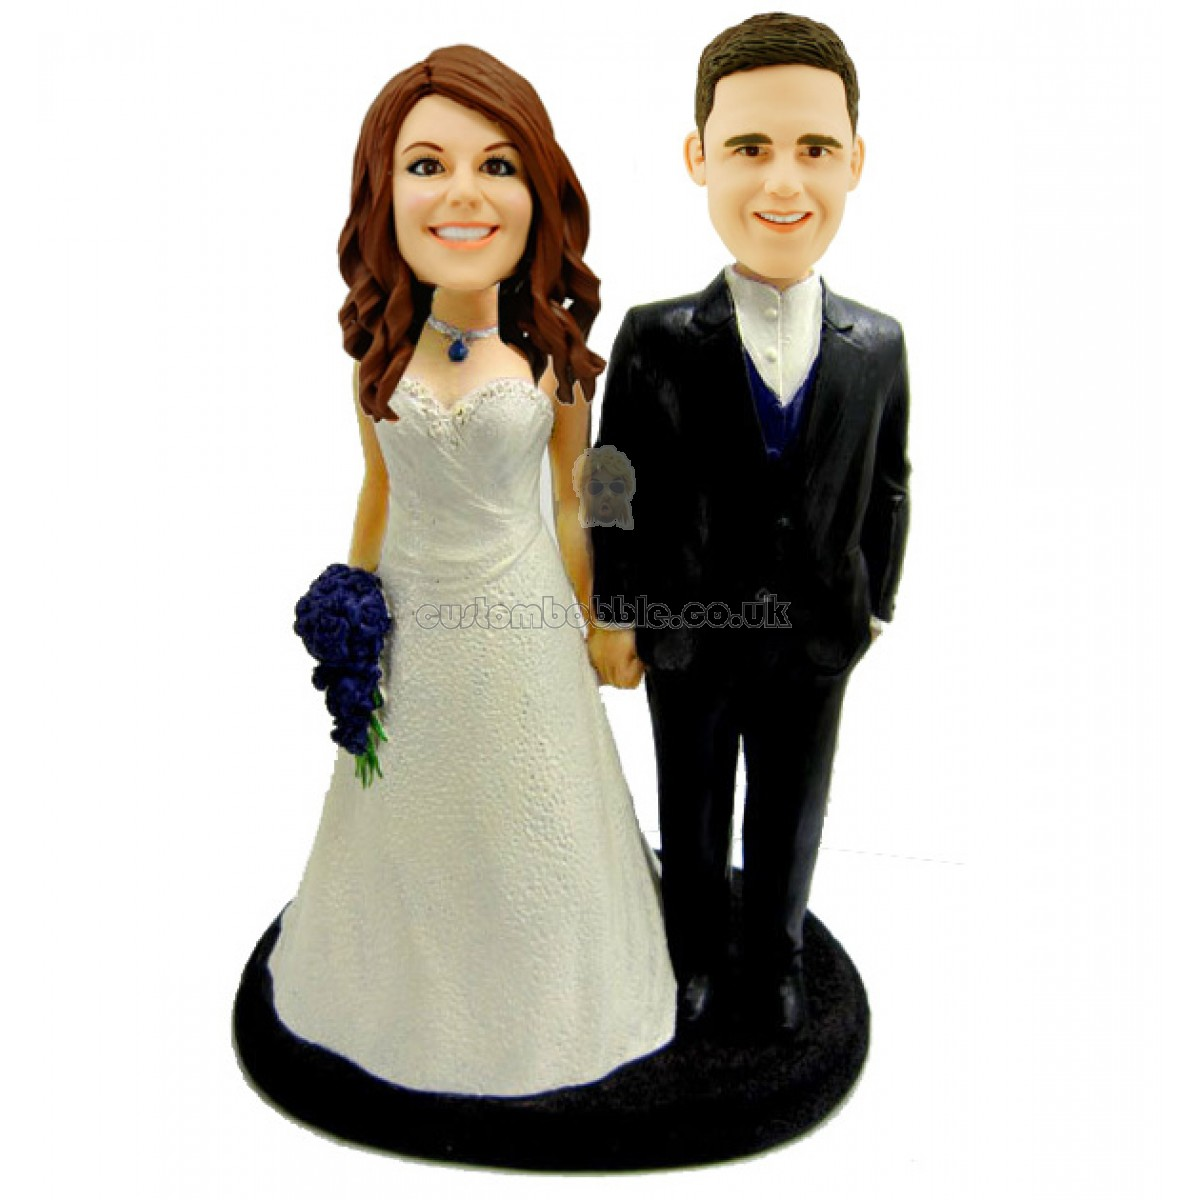 Personalised Cake Toppers Uk Wedding : personalised wedding cake topper